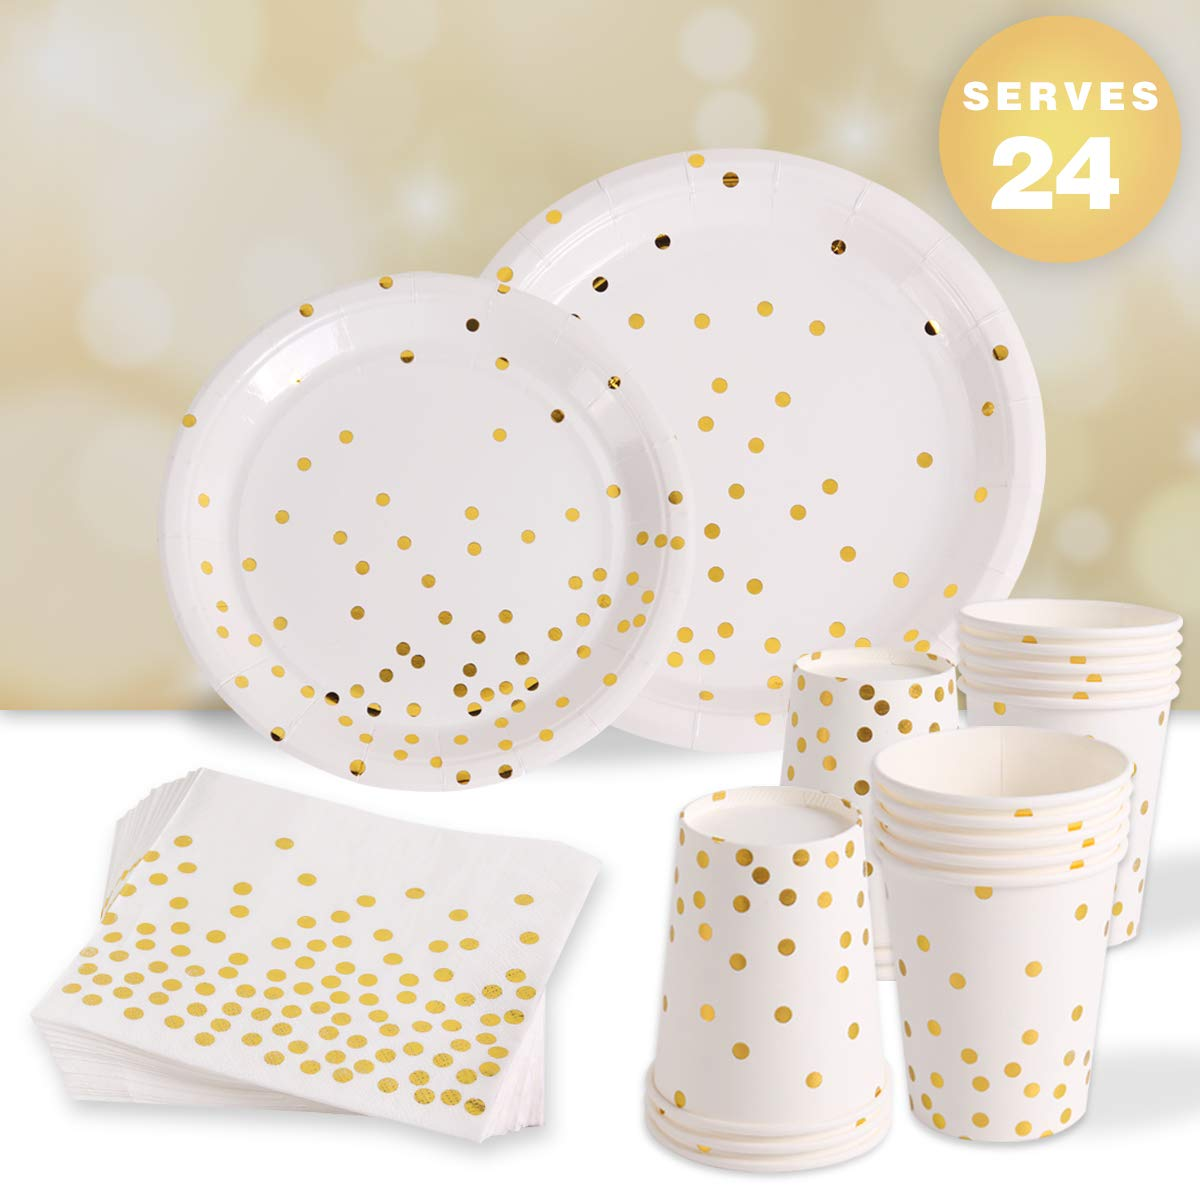 96 Piece White and Gold Party Supplies for 24 Guests | Paper Disposable Dinnerware Set | Tableware Set - Gold Dots Dinner Plates,Dessert Plates,9oz Cups,Napkins | Wedding Bridal Baby Shower Birthday